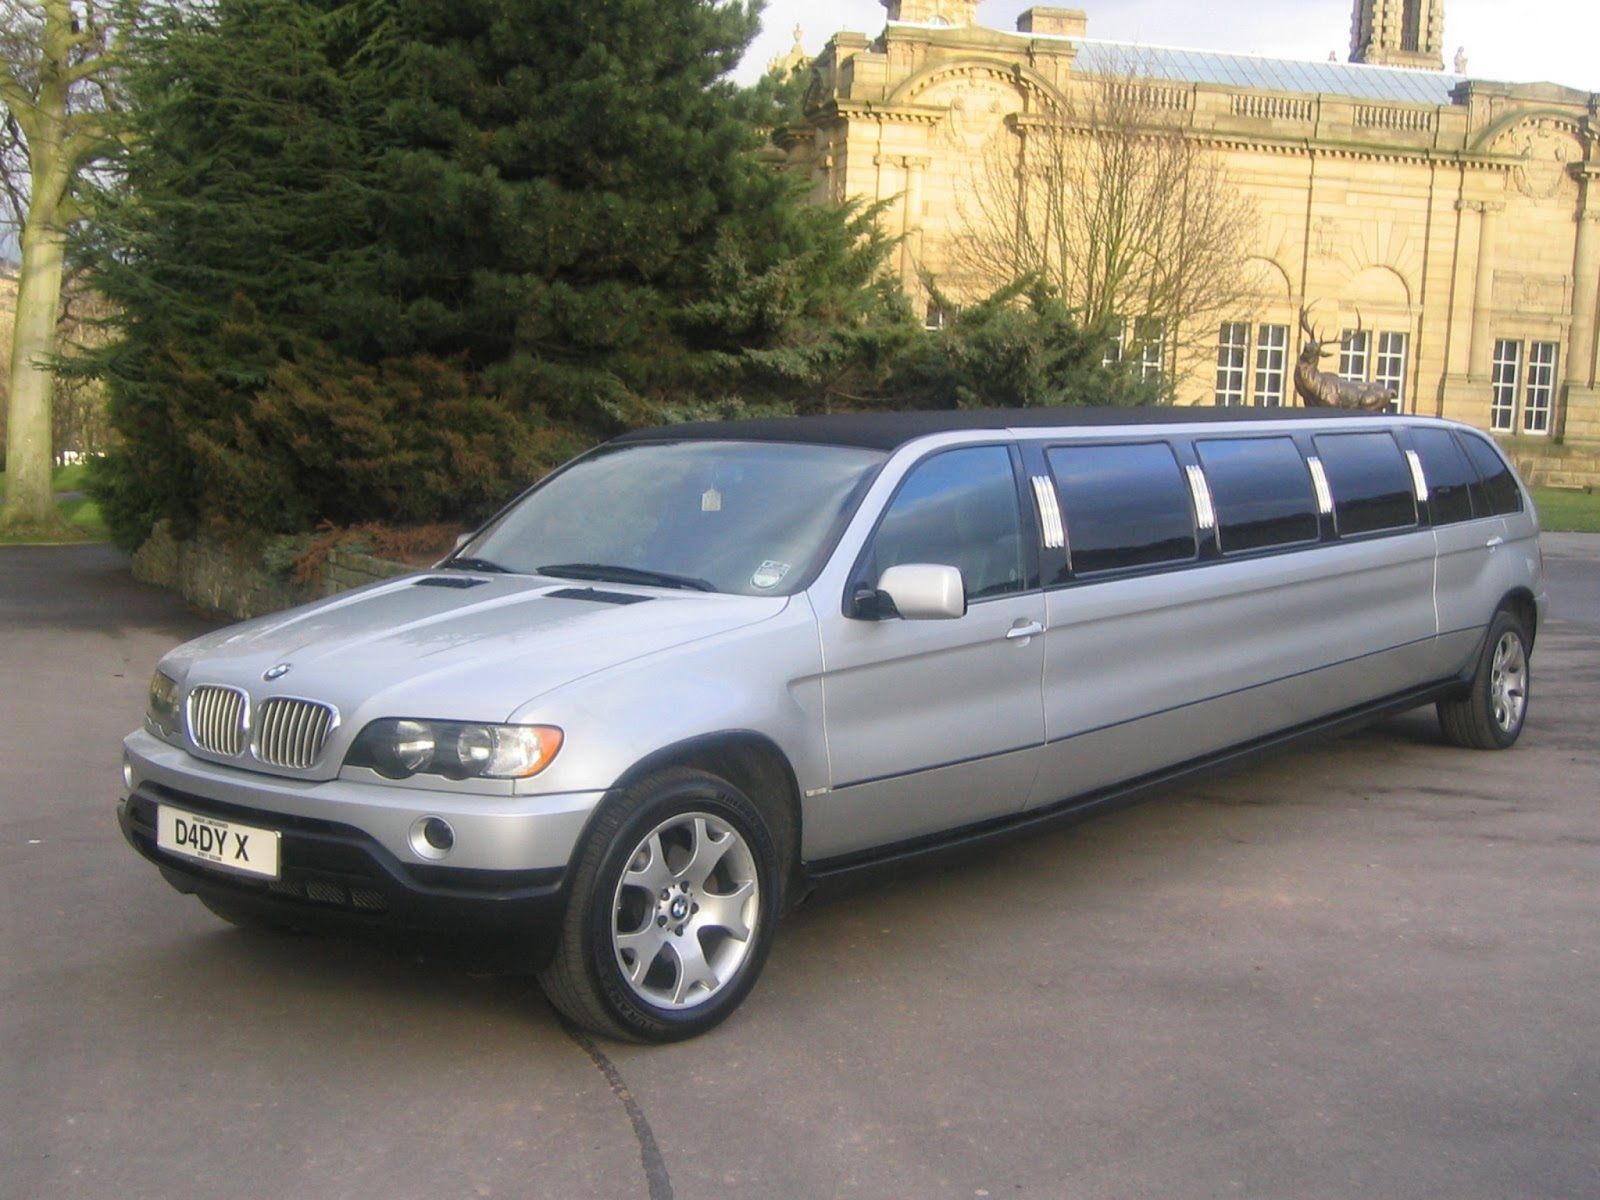 Luxury Limousine Services: Limo Hire London: Easiest way of Journey